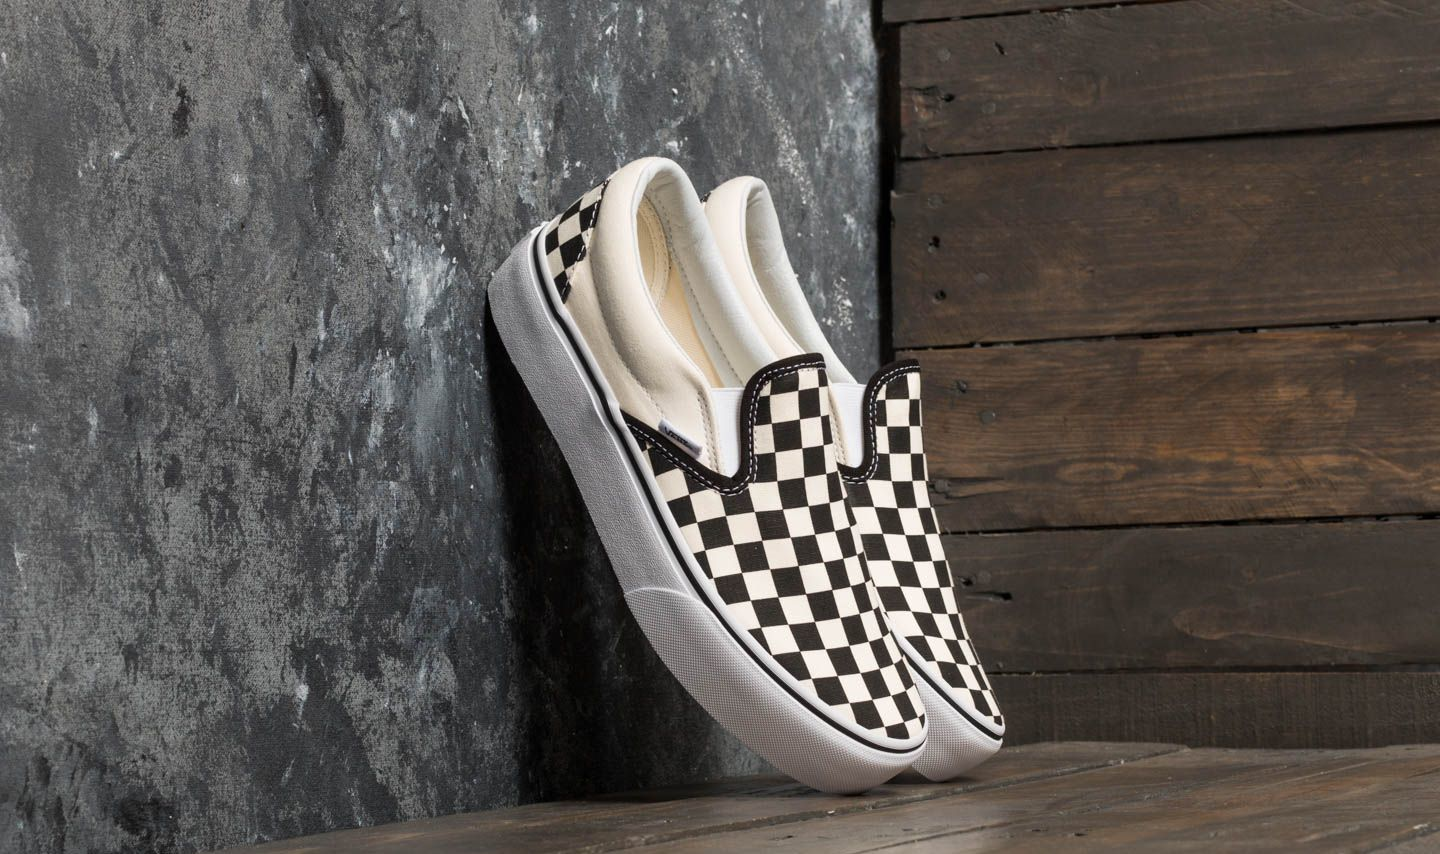 Vans Classic Slip-On Platform Black And White Checkerboard  White za  skvělou cenu 1 d58d0680b7